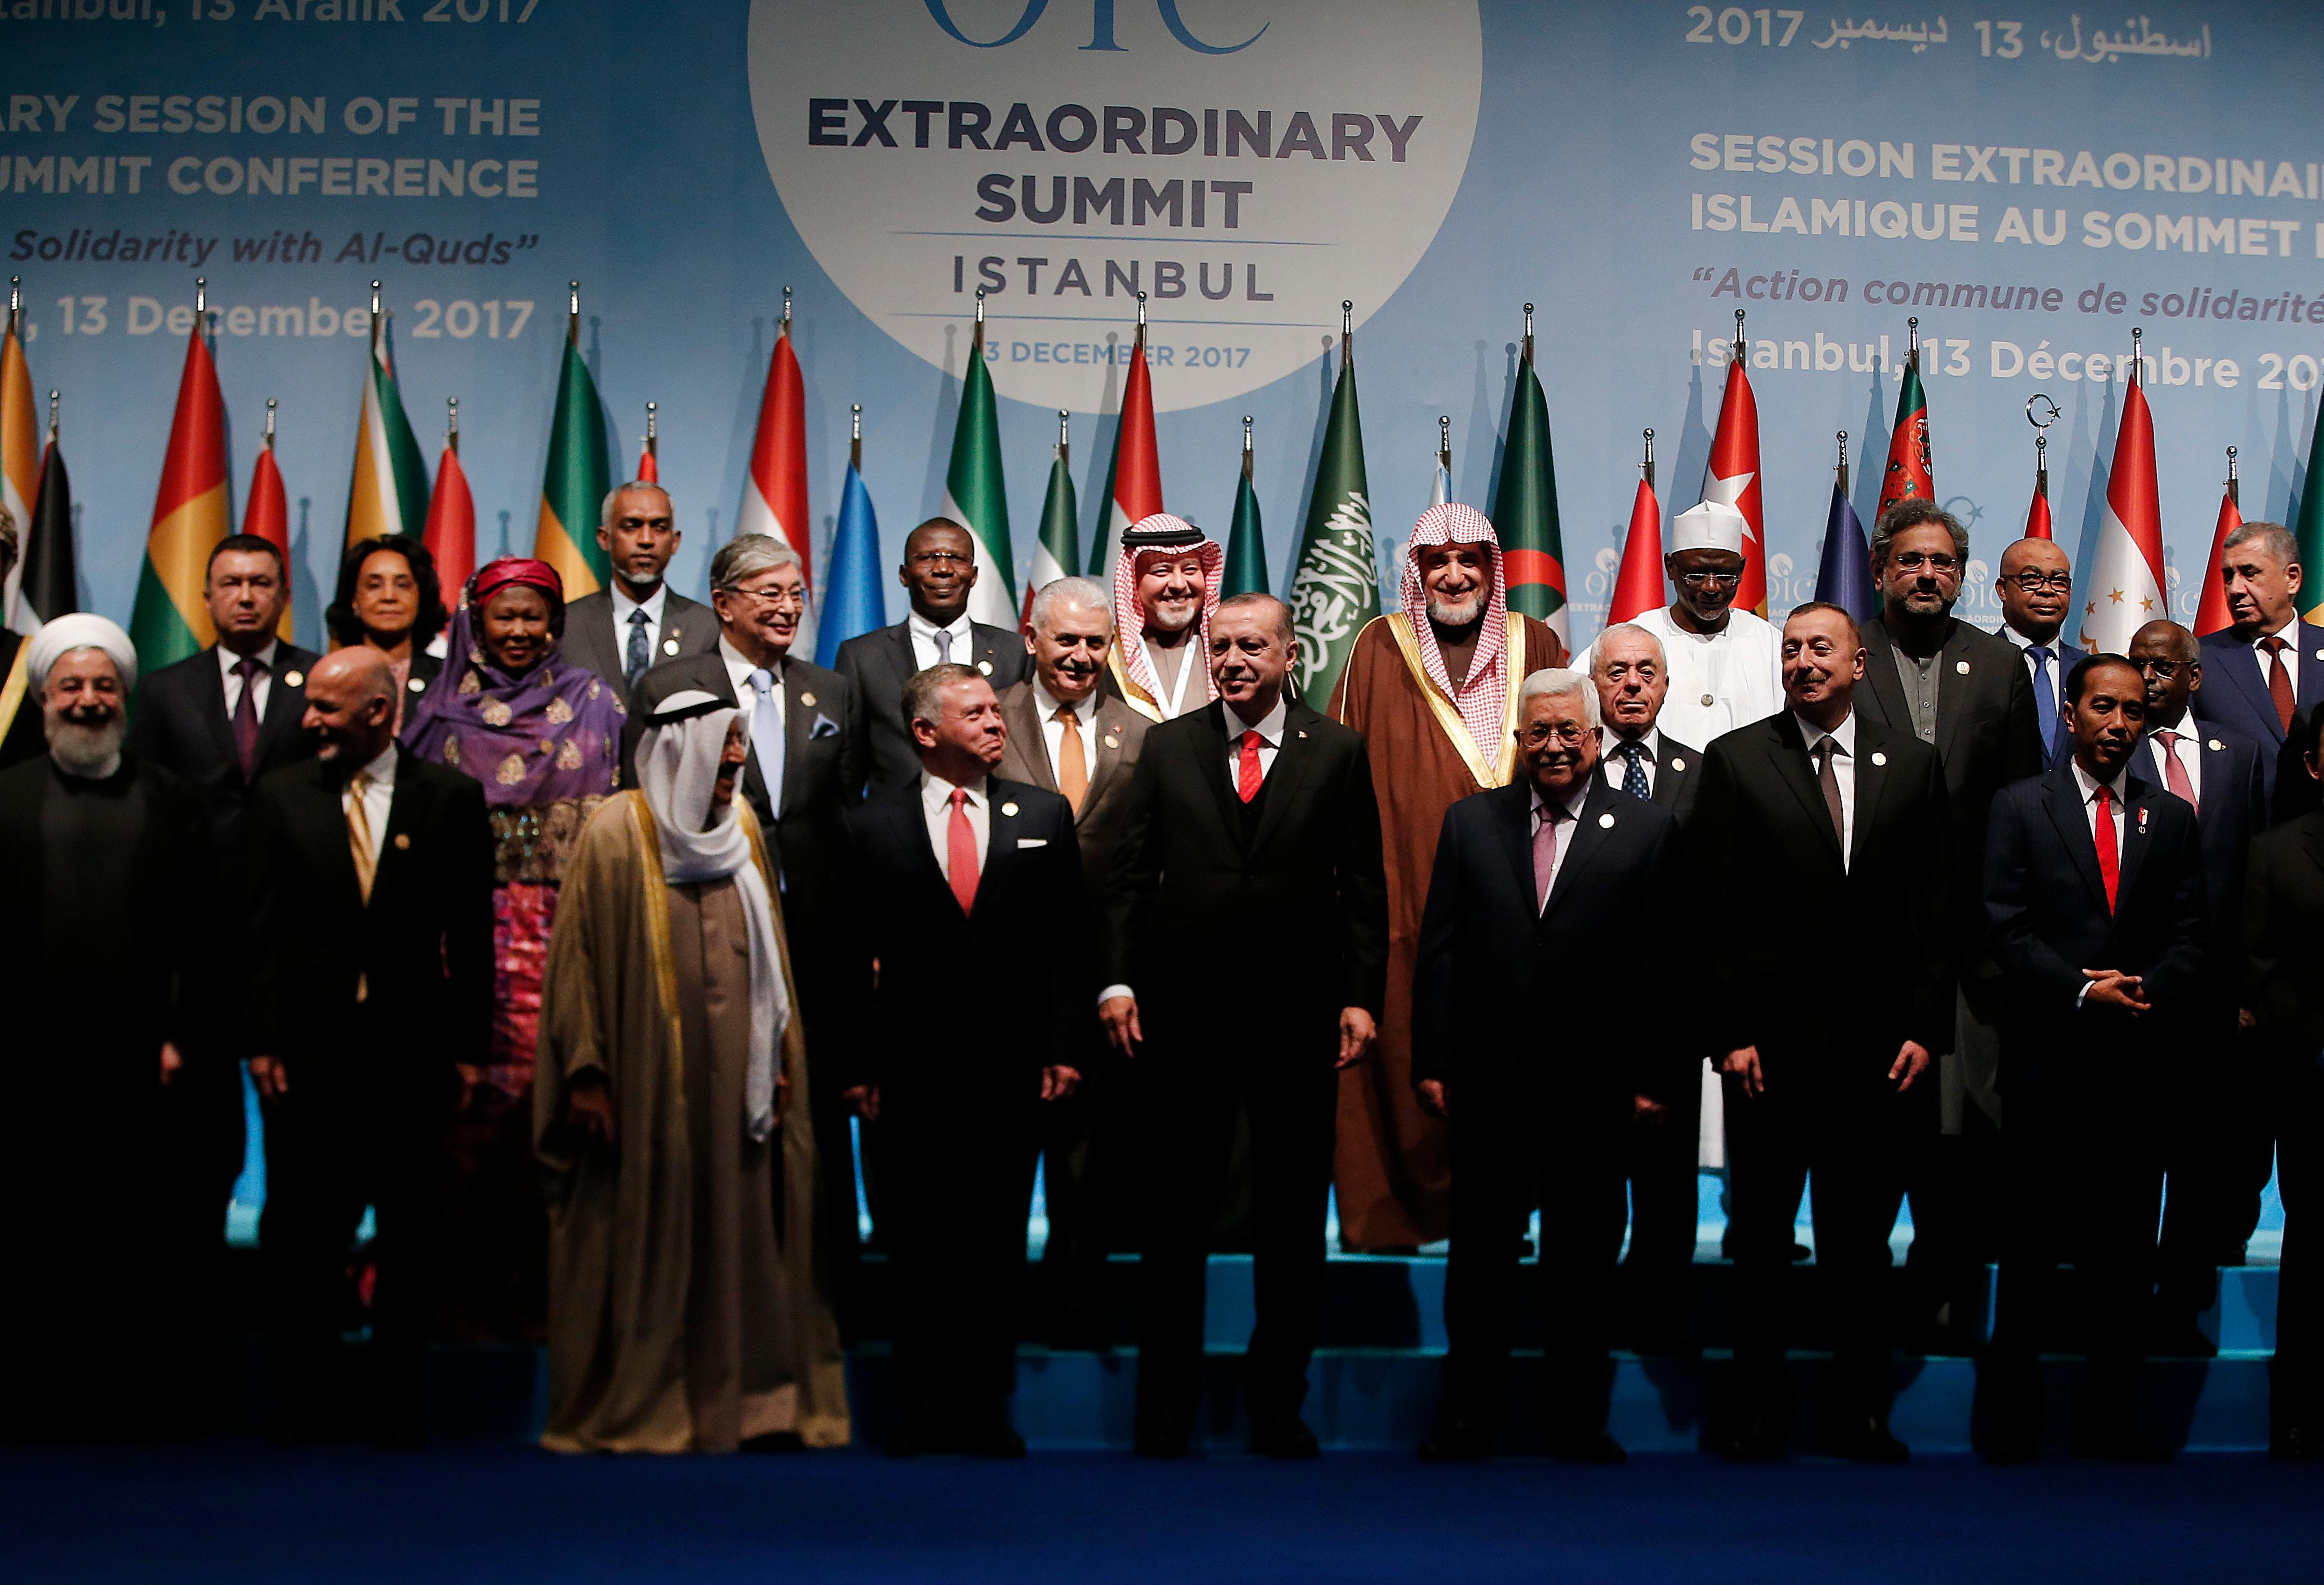 Turkey's President Recep Tayyip Erdogan, centre, flanked by Jordan's King Abdullah II, left and Palestinian President Mahmoud Abbas, right, poses with other leaders of Islamic nations following a photo-op prior to the opening session of the Organisation of Islamic Cooperation Extraordinary Summit in Istanbul, Wednesday, Dec. 13, 2017 Leaders and top officials from Islamic nations, members of 57-member Organization of Islamic Cooperation gathered for a summit that is expected to forge a unified stance against U.S. President Donald Trump's recognition of Jerusalem as the capital of Israel. (AP Photo/Lefteris Pitarakis)